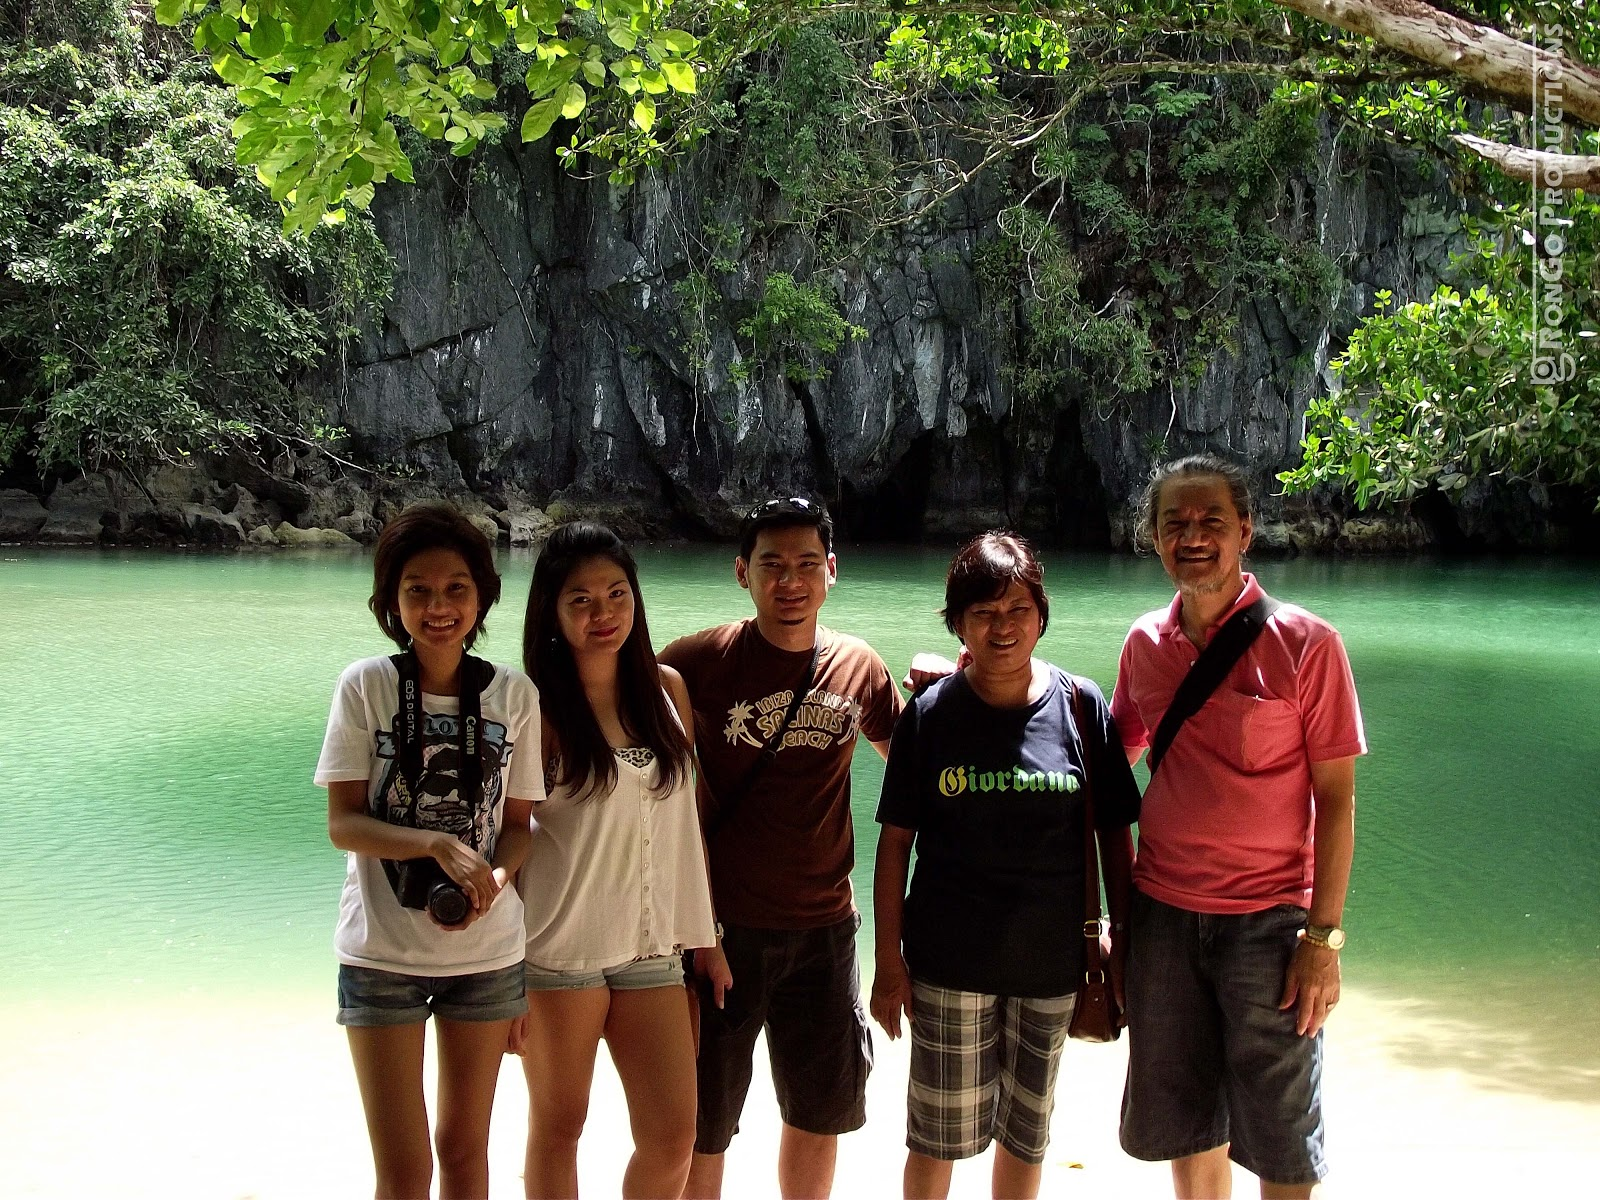 River underground tour palawan what to wear